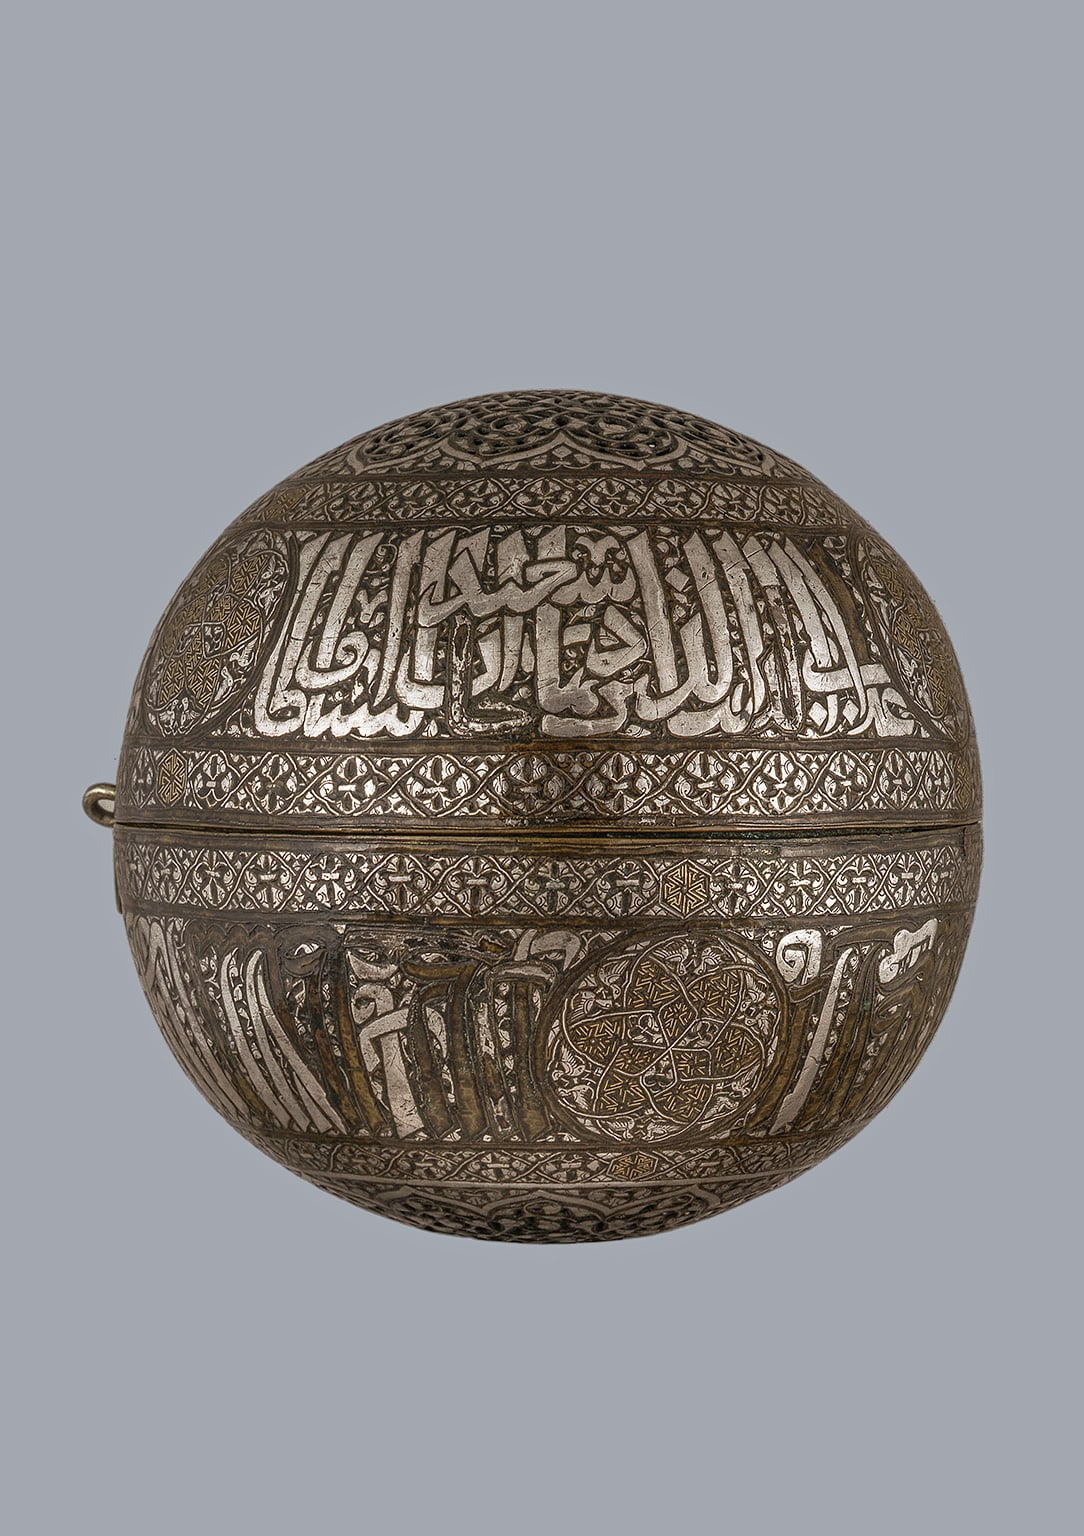 Spherical incense burner, probably Mosul, 1319-1335. With an inscription to the Il-Khanid Sultan Abu Sacid